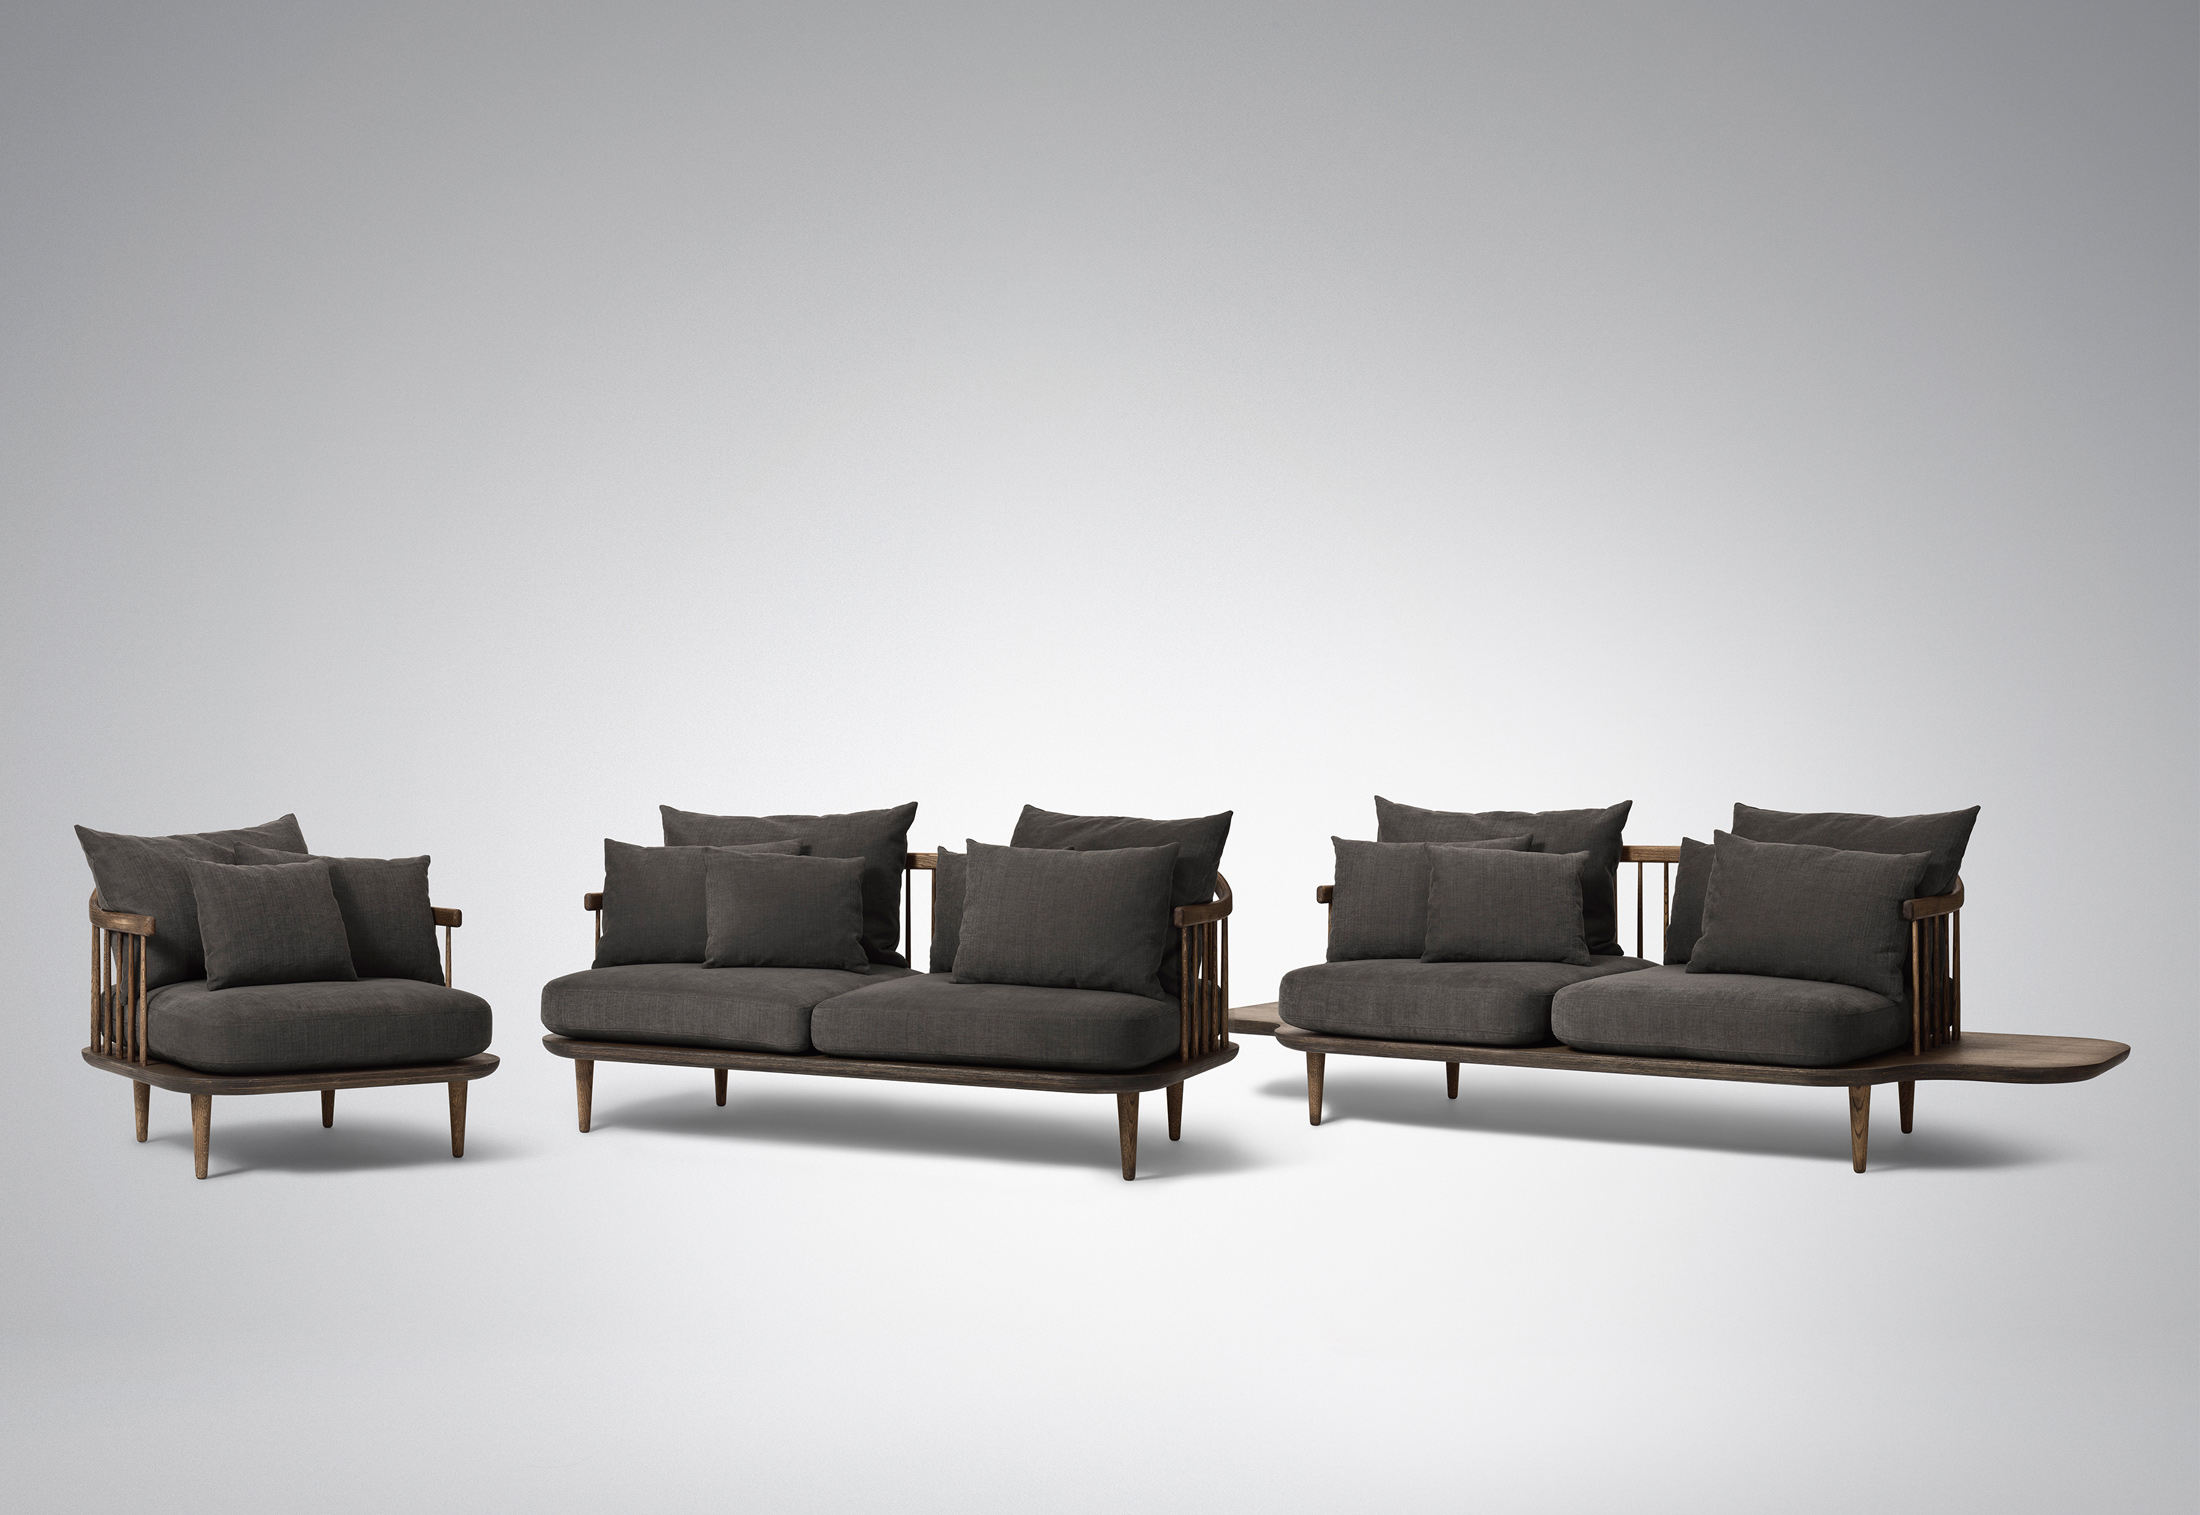 Fly sofa with side tables by andTradition